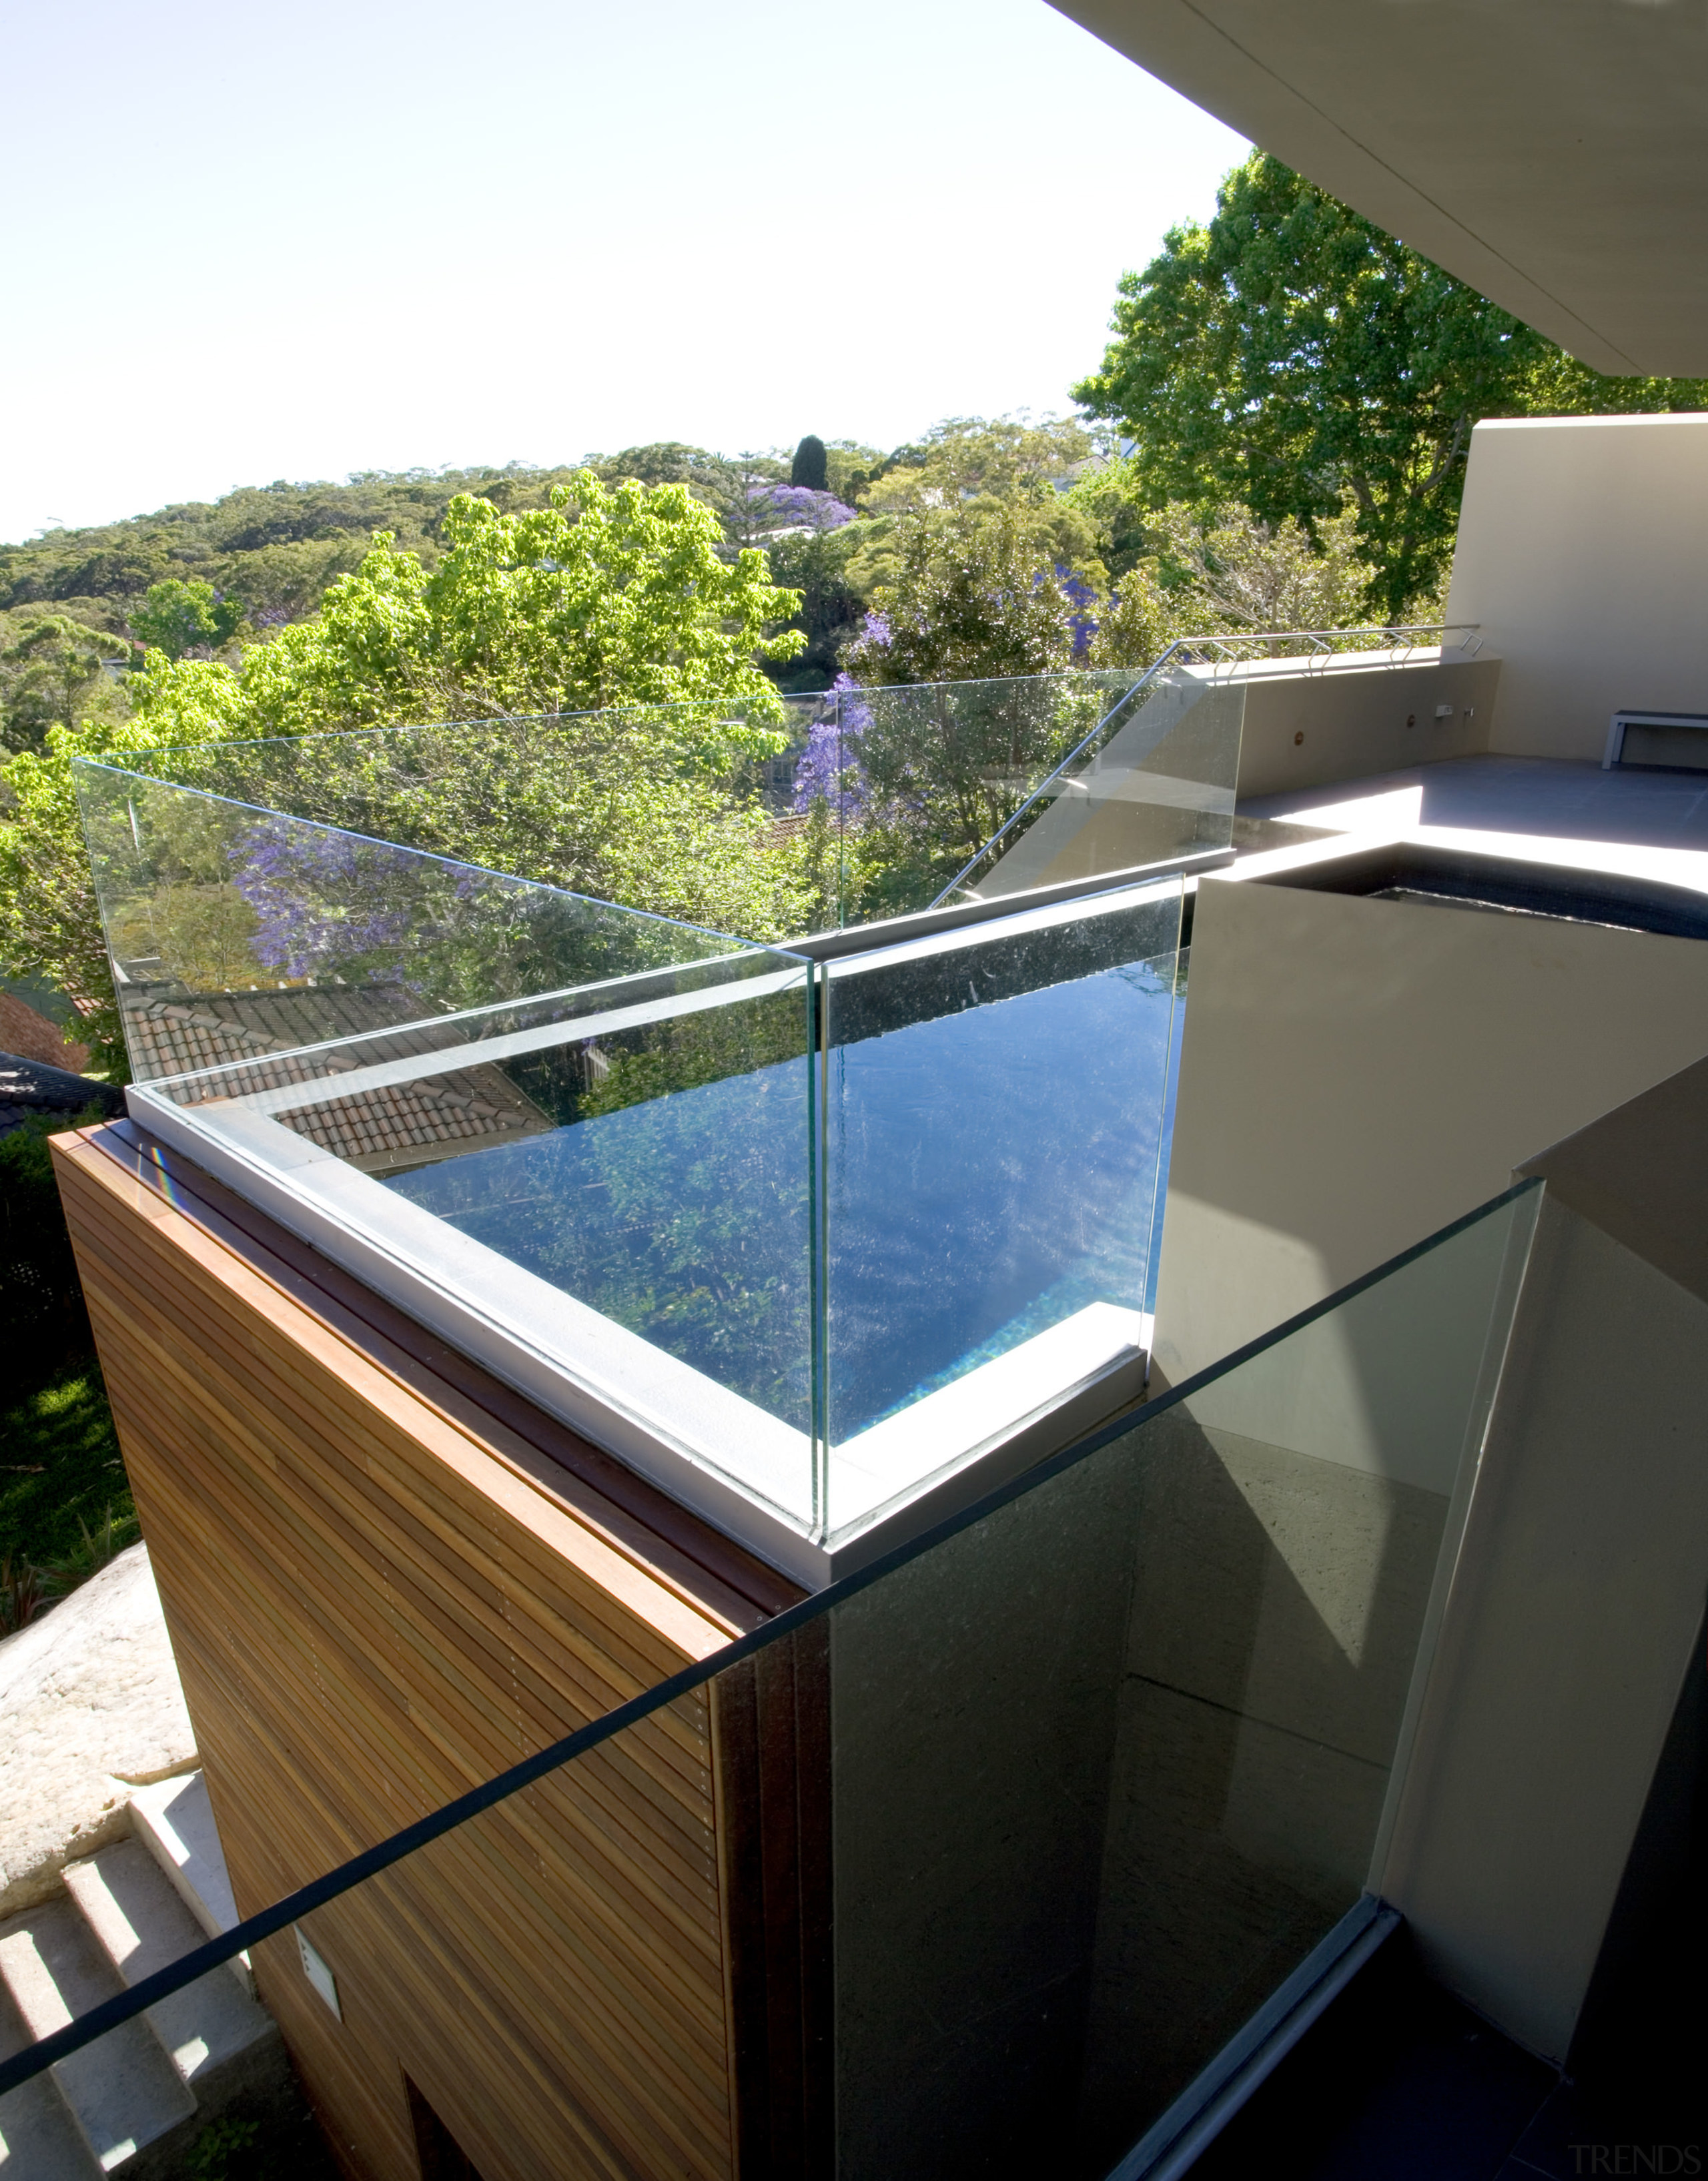 An existing staircase runs down to the garden architecture, daylighting, glass, house, property, real estate, reflection, roof, swimming pool, water